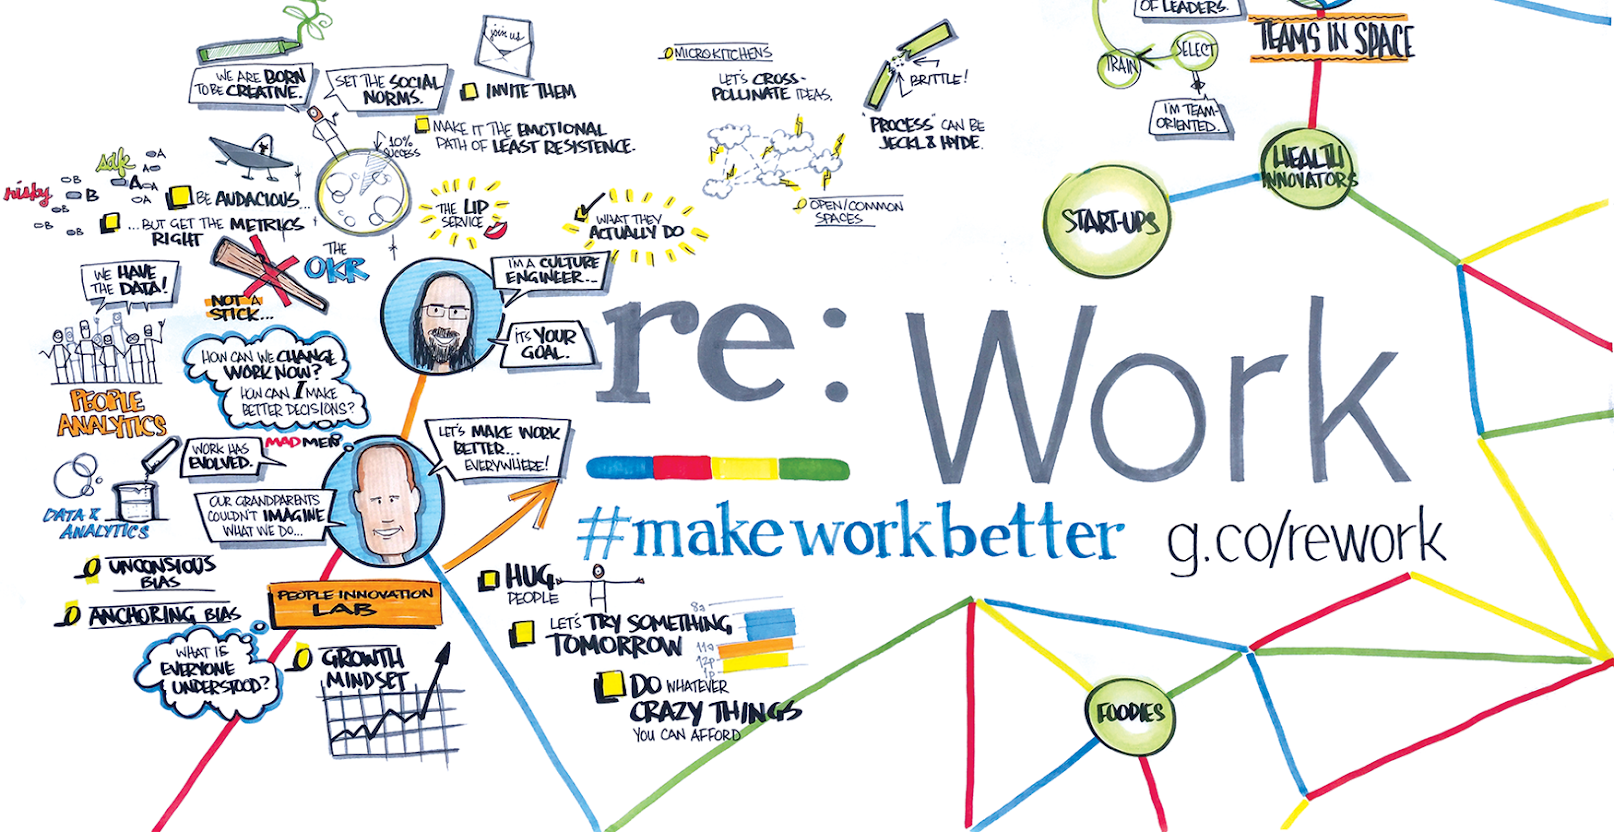 Need inspiration? Watch the re:Work 2016 event videos